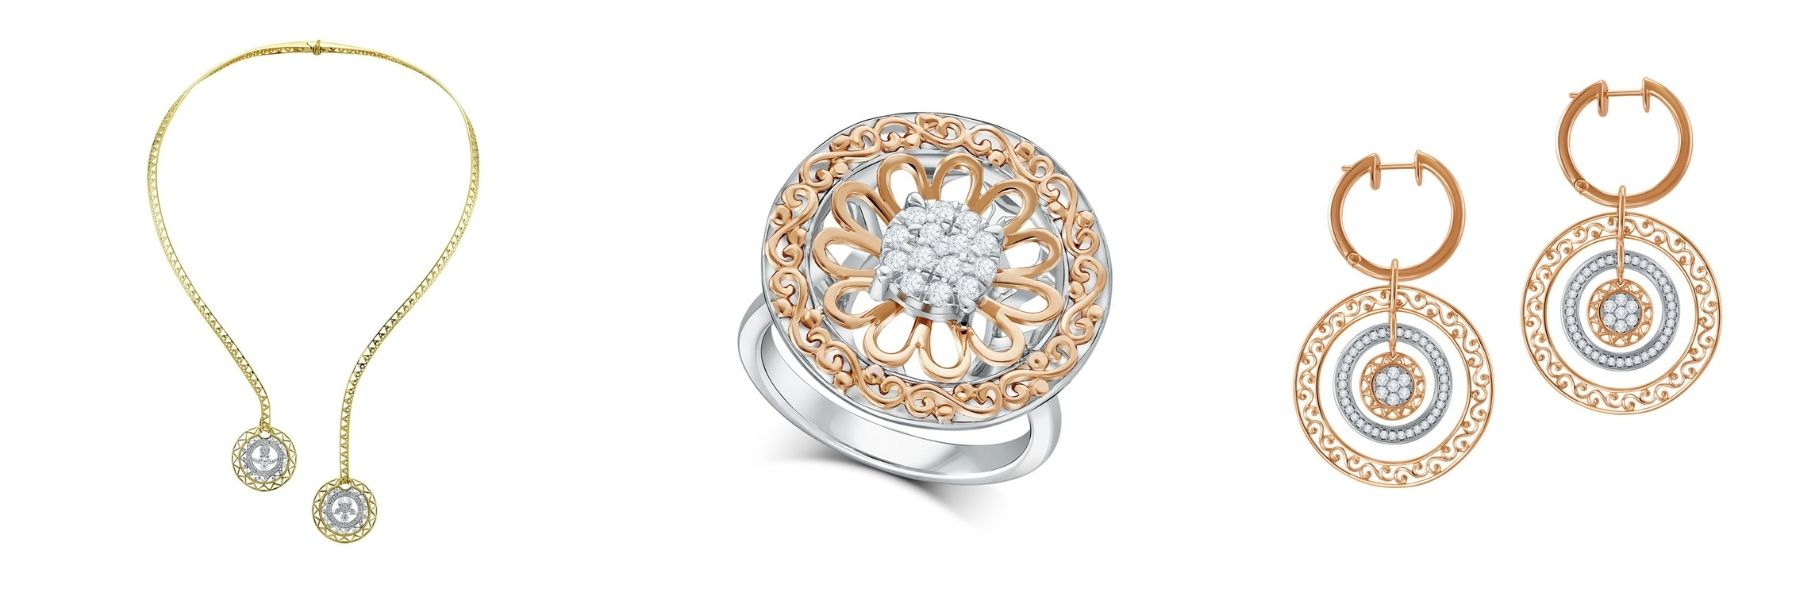 Seri Tara / Foto: Courtesy of The Palace National Jeweler